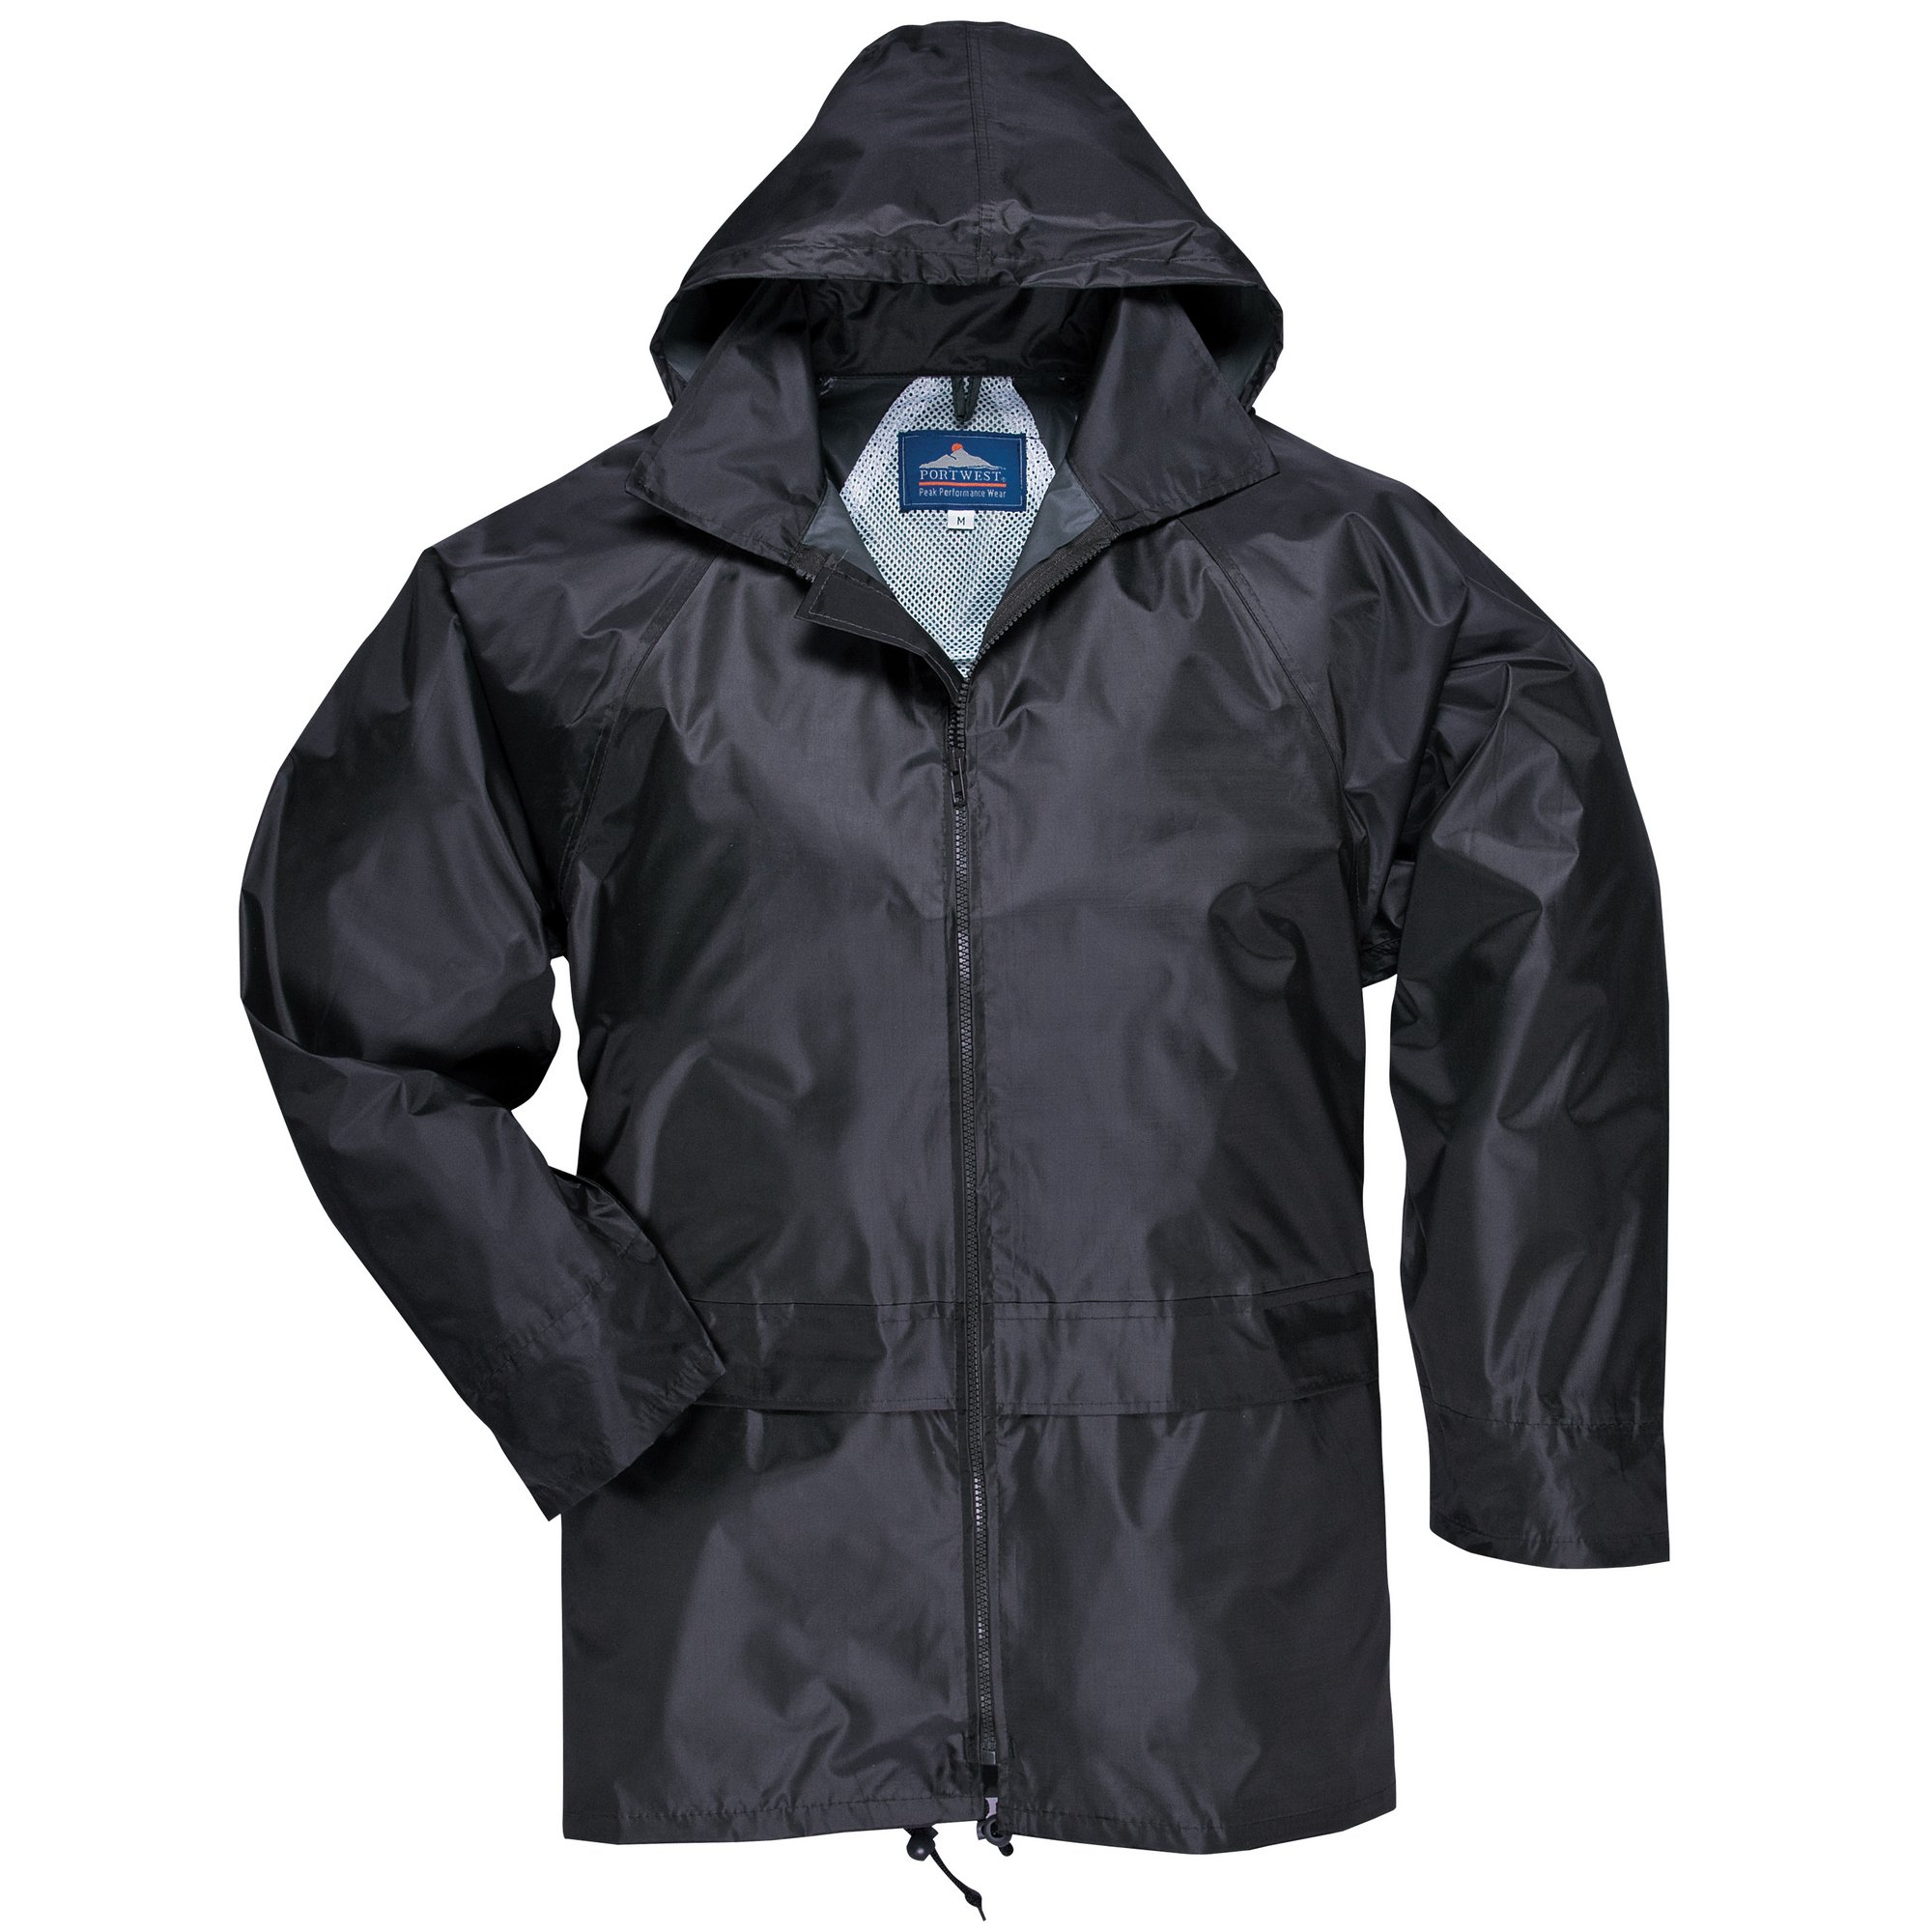 Portwest Mens Classic Rain Jacket (S440) (L) (Black) by Portwest